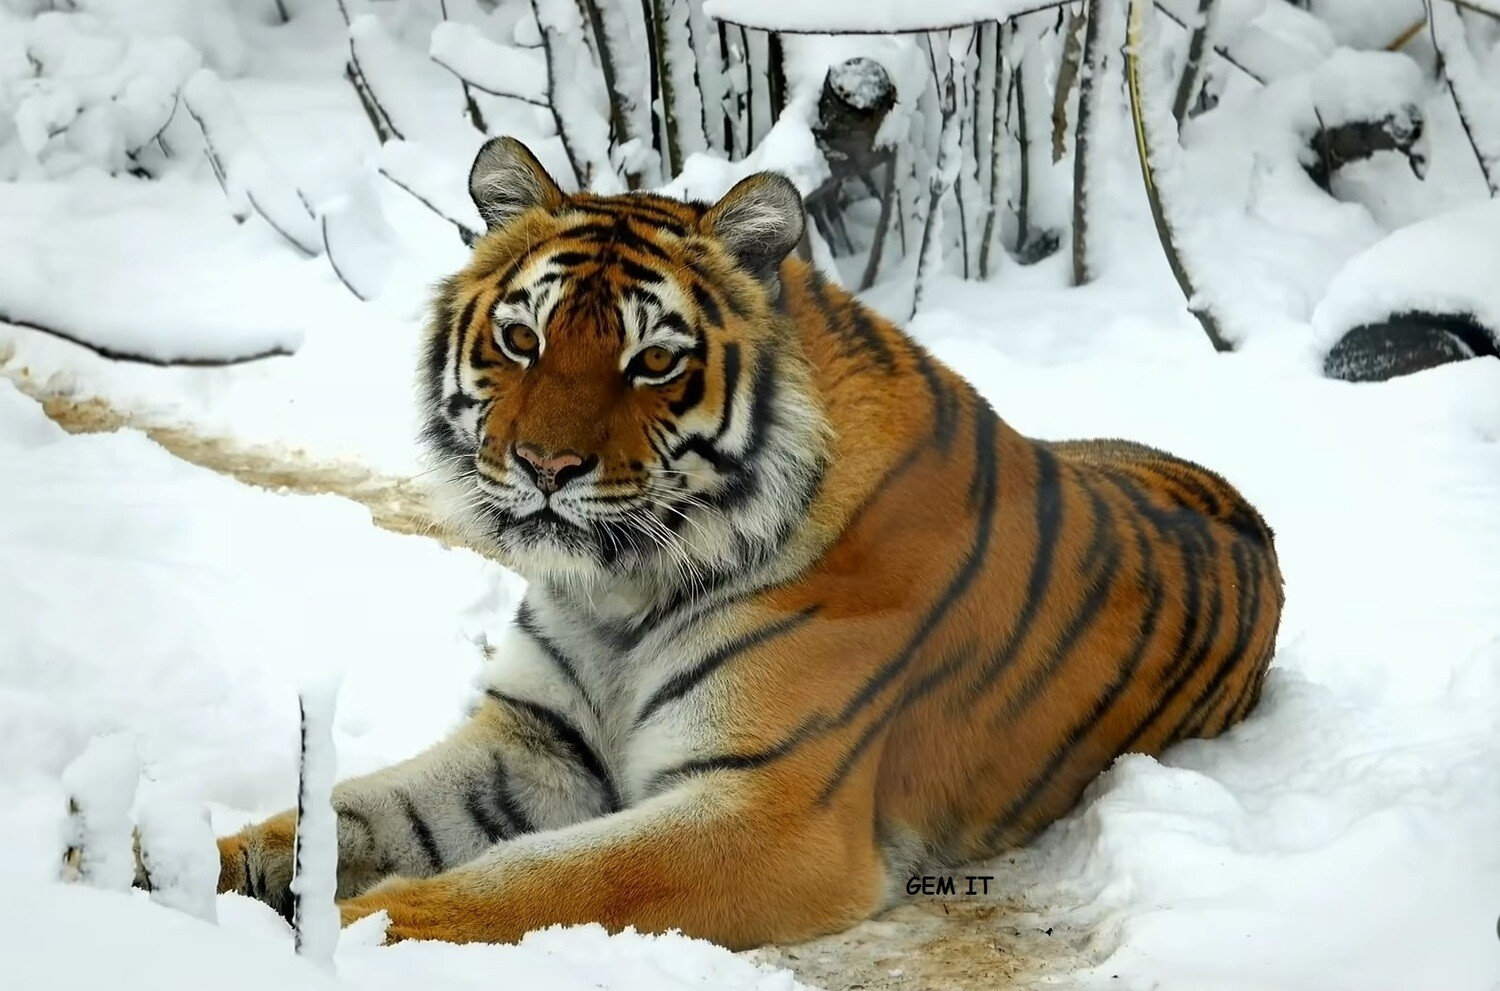 TIGER 5 (exclusive to Gem It) - Full Drill Diamond Painting - Specially ordered for you. Delivery is approximately 4 - 6 weeks.